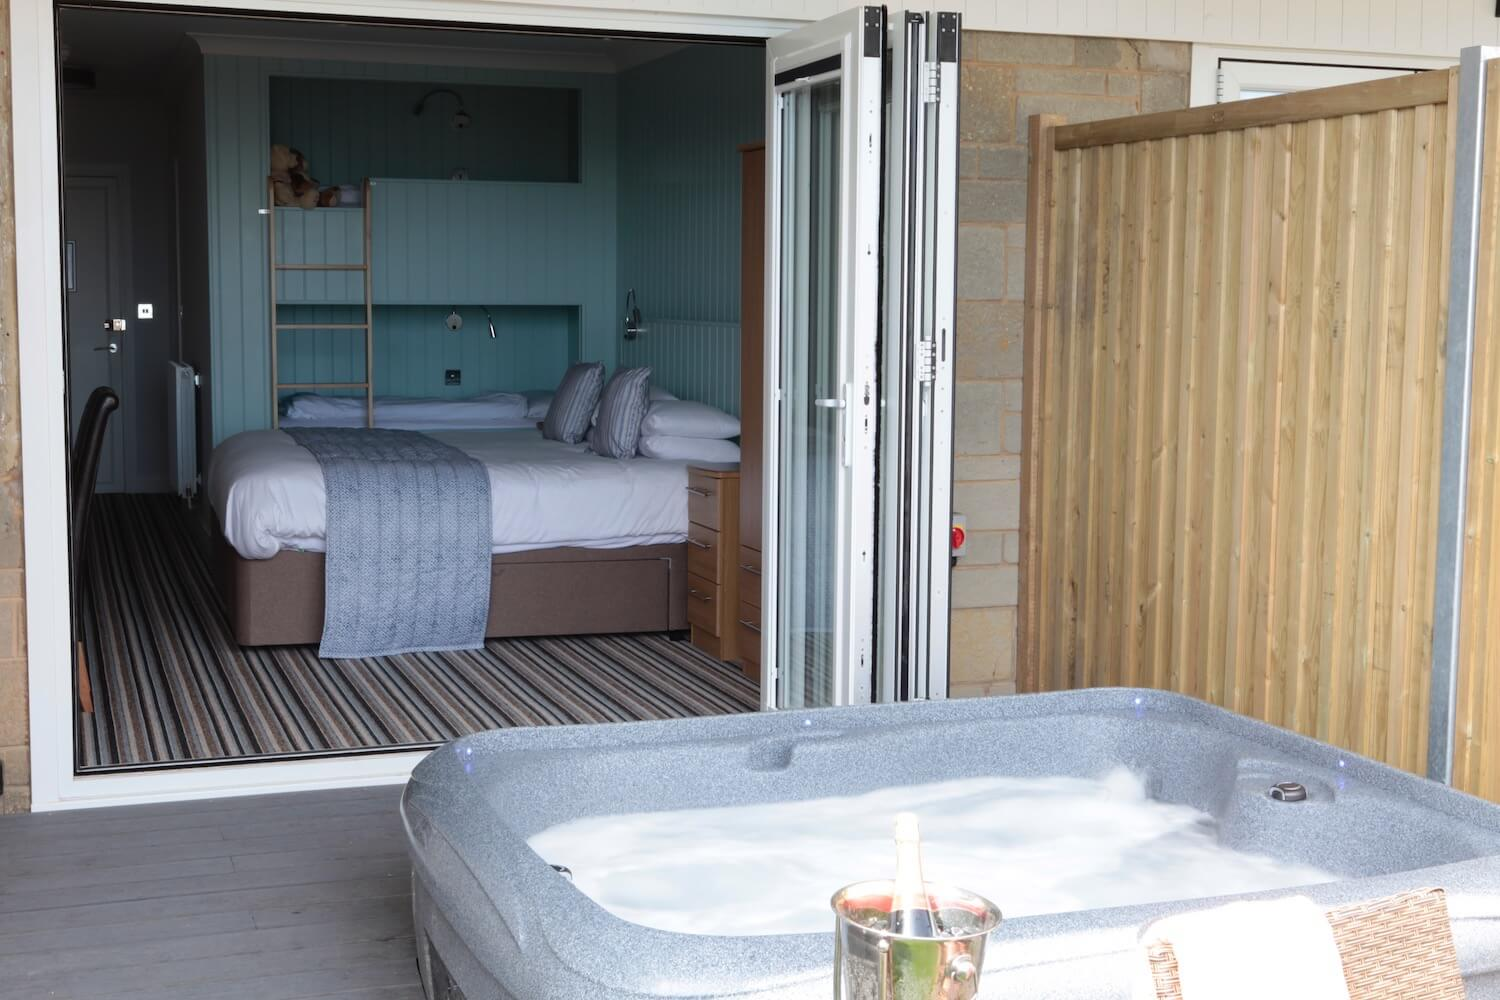 Superior Garden Room with Private Garden, Patio, Hot Tub, Luccombe Hall Hotel, Shanklin, Isle of Wght.jpg